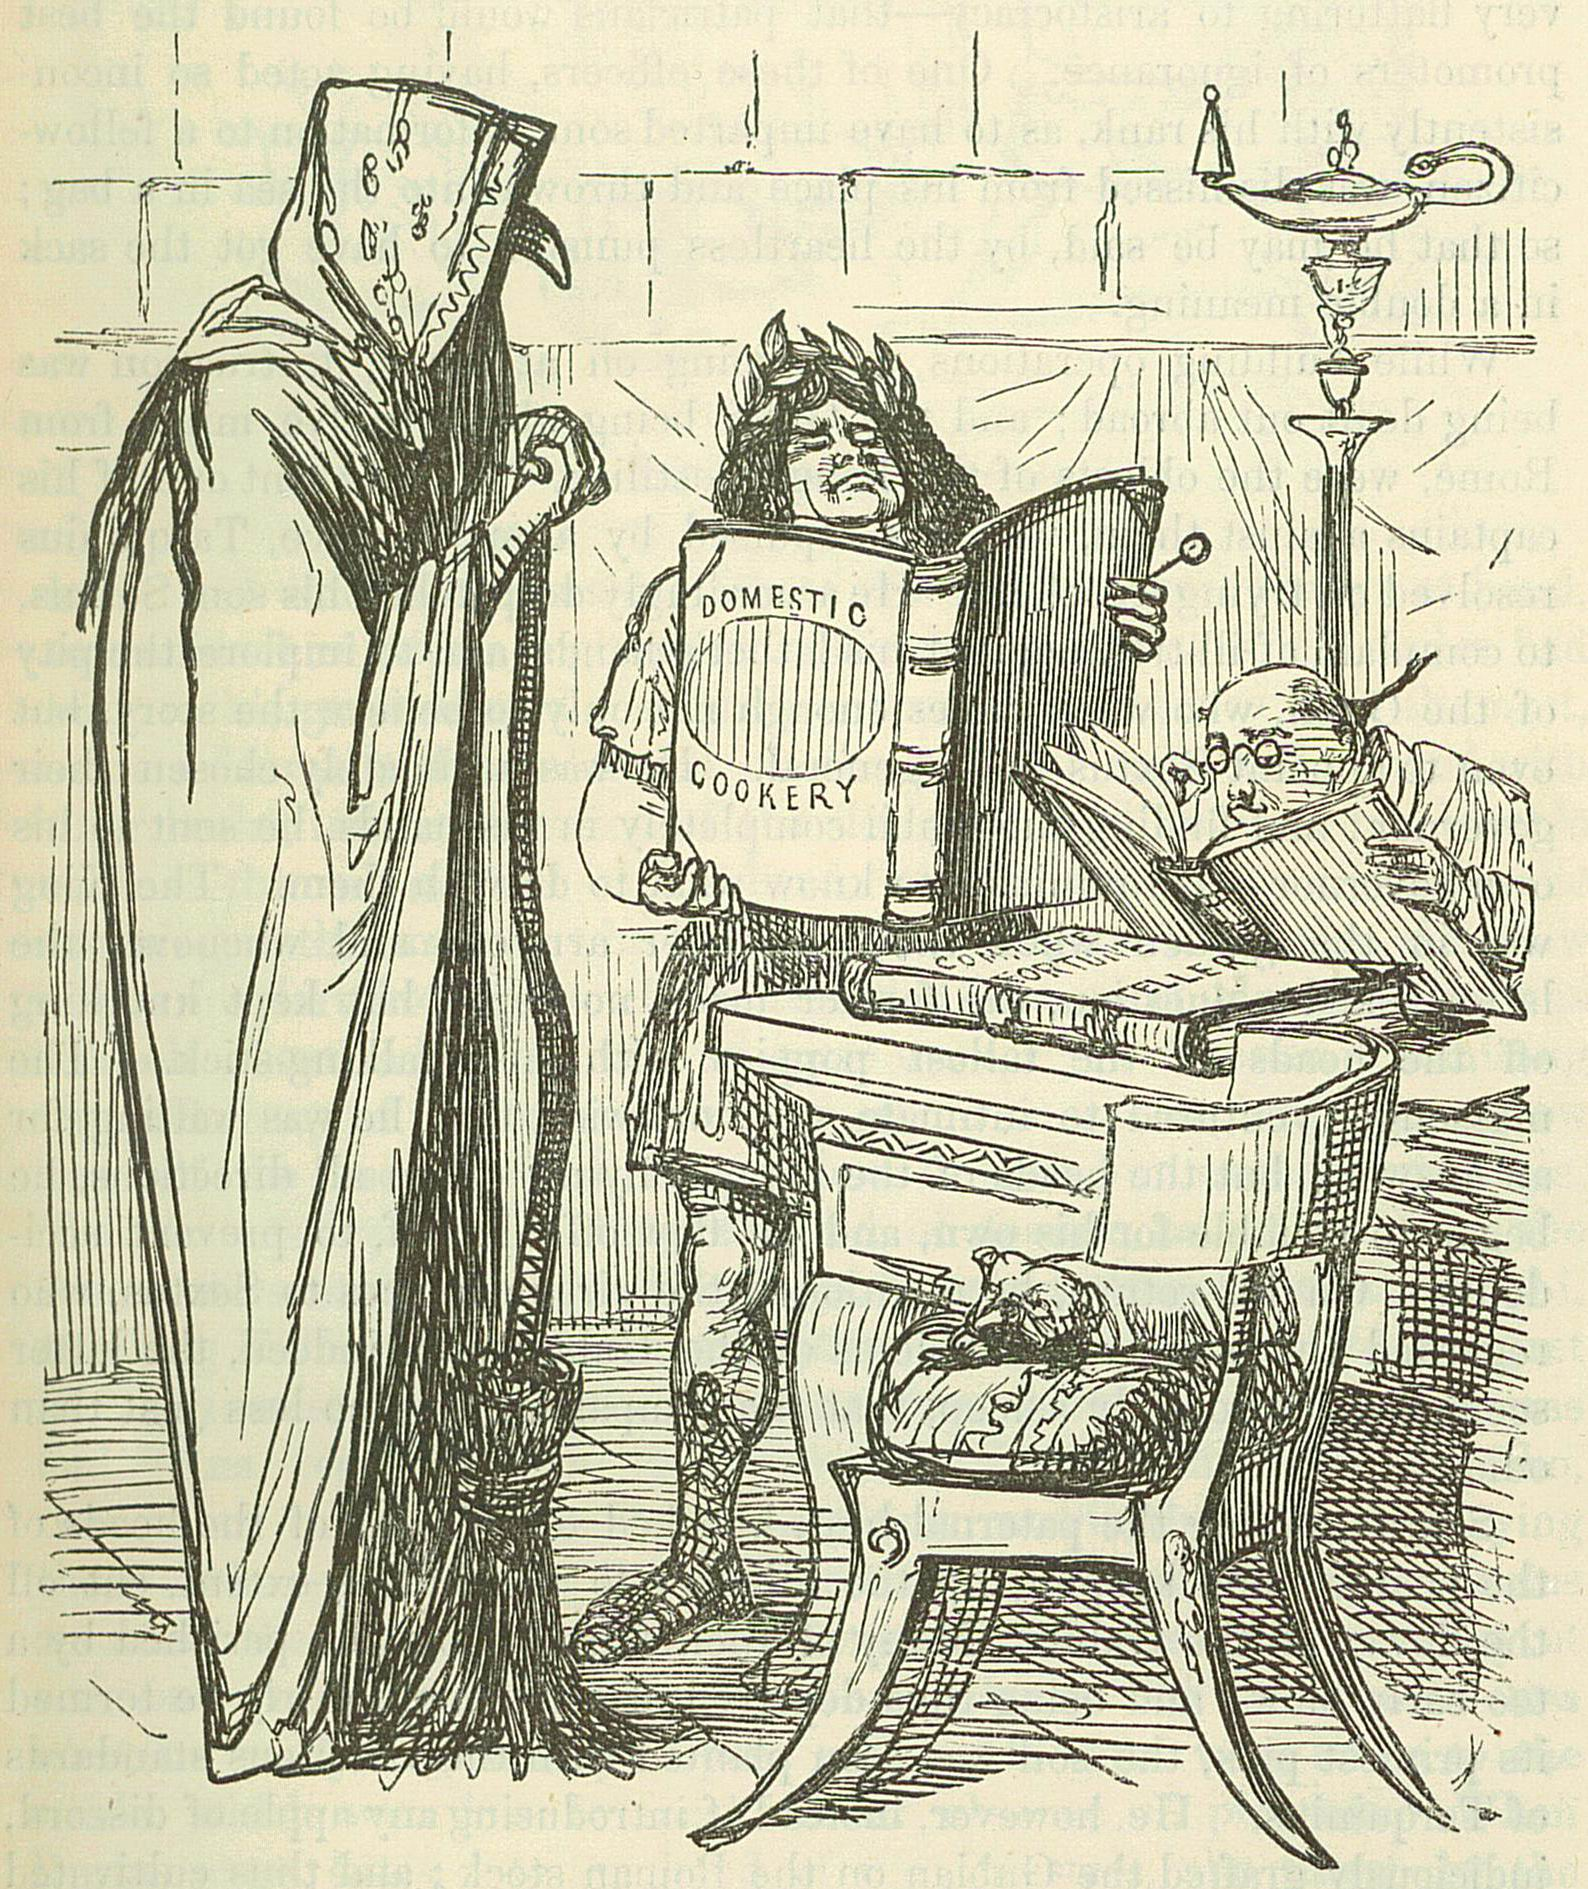 Image by John Leech, from: The Comic History o...